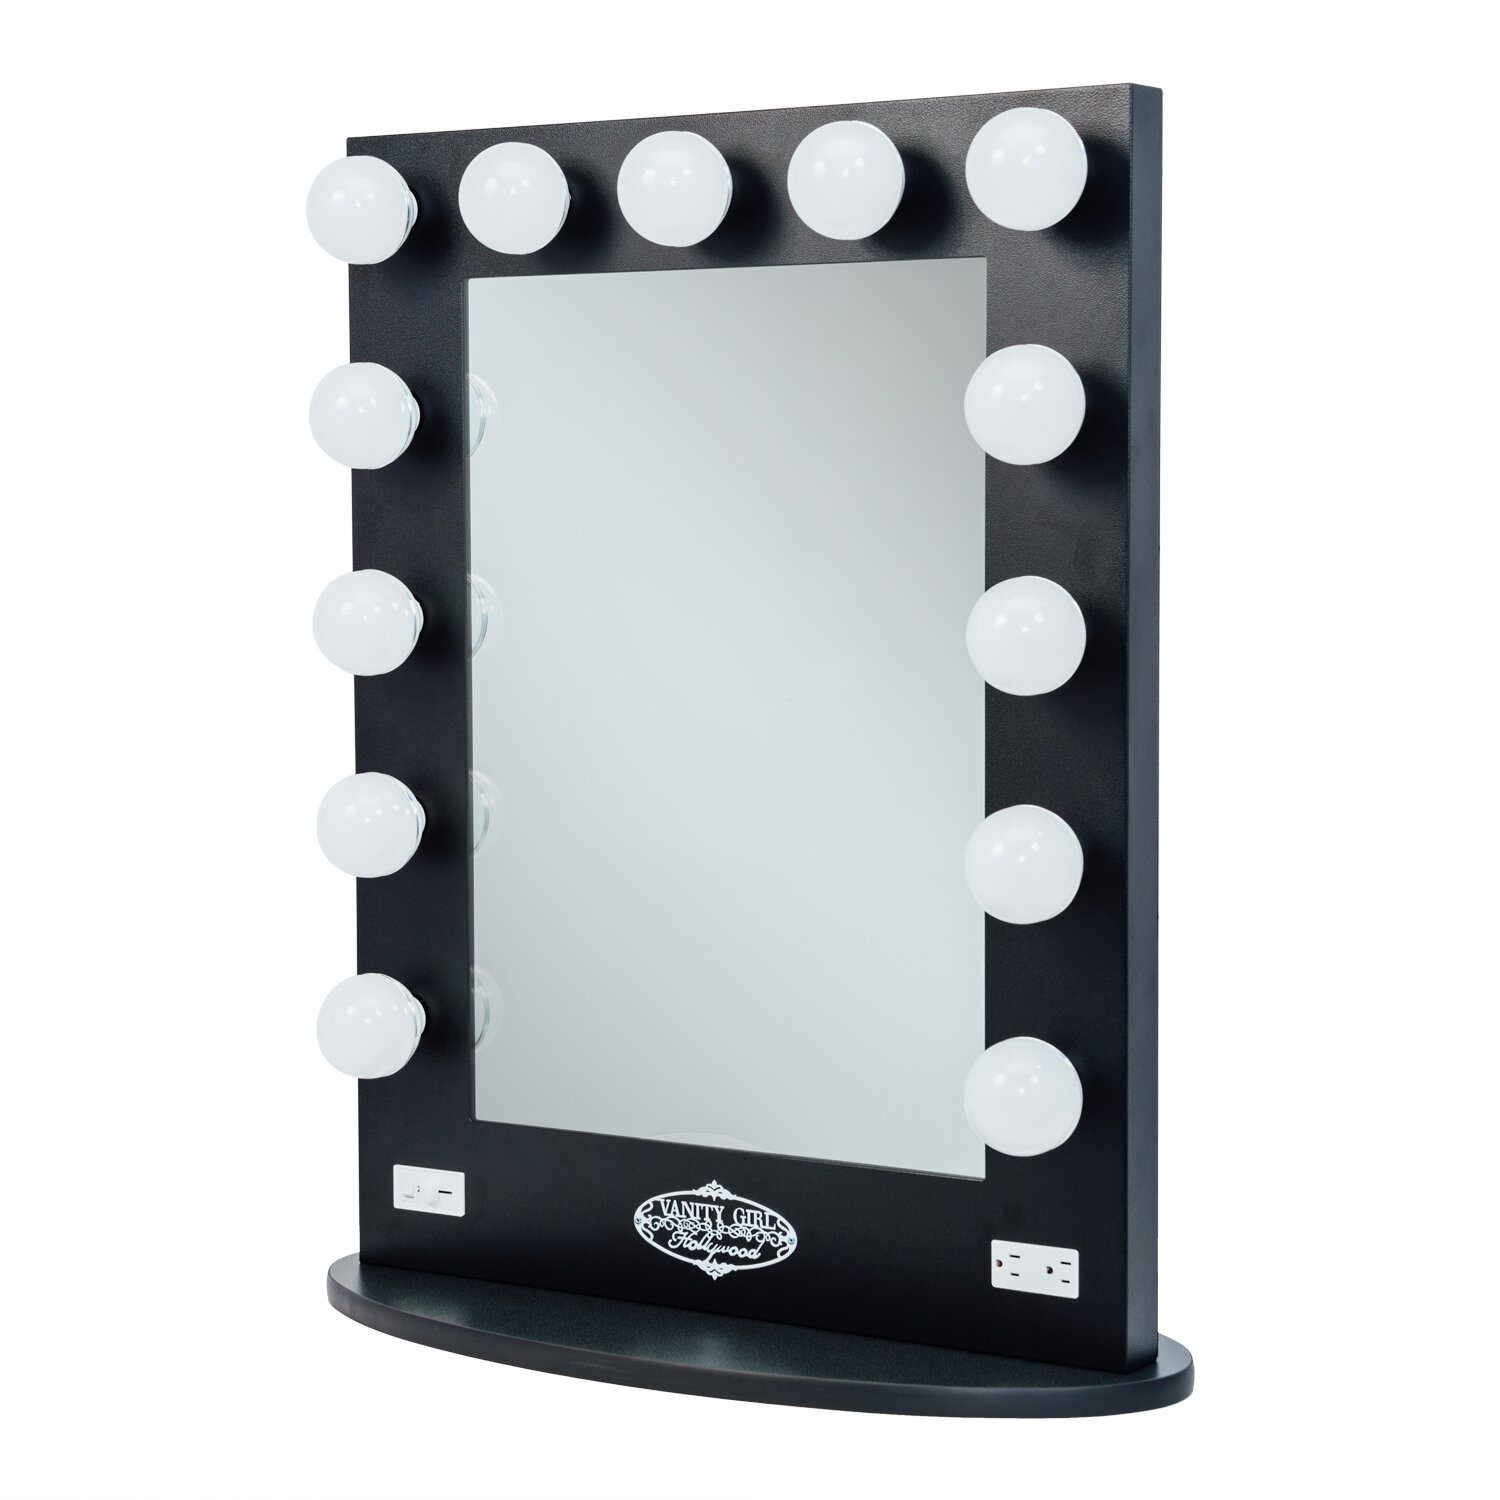 Vanity girl hollywood broadway lighted vanity mirror for Mirror vanity